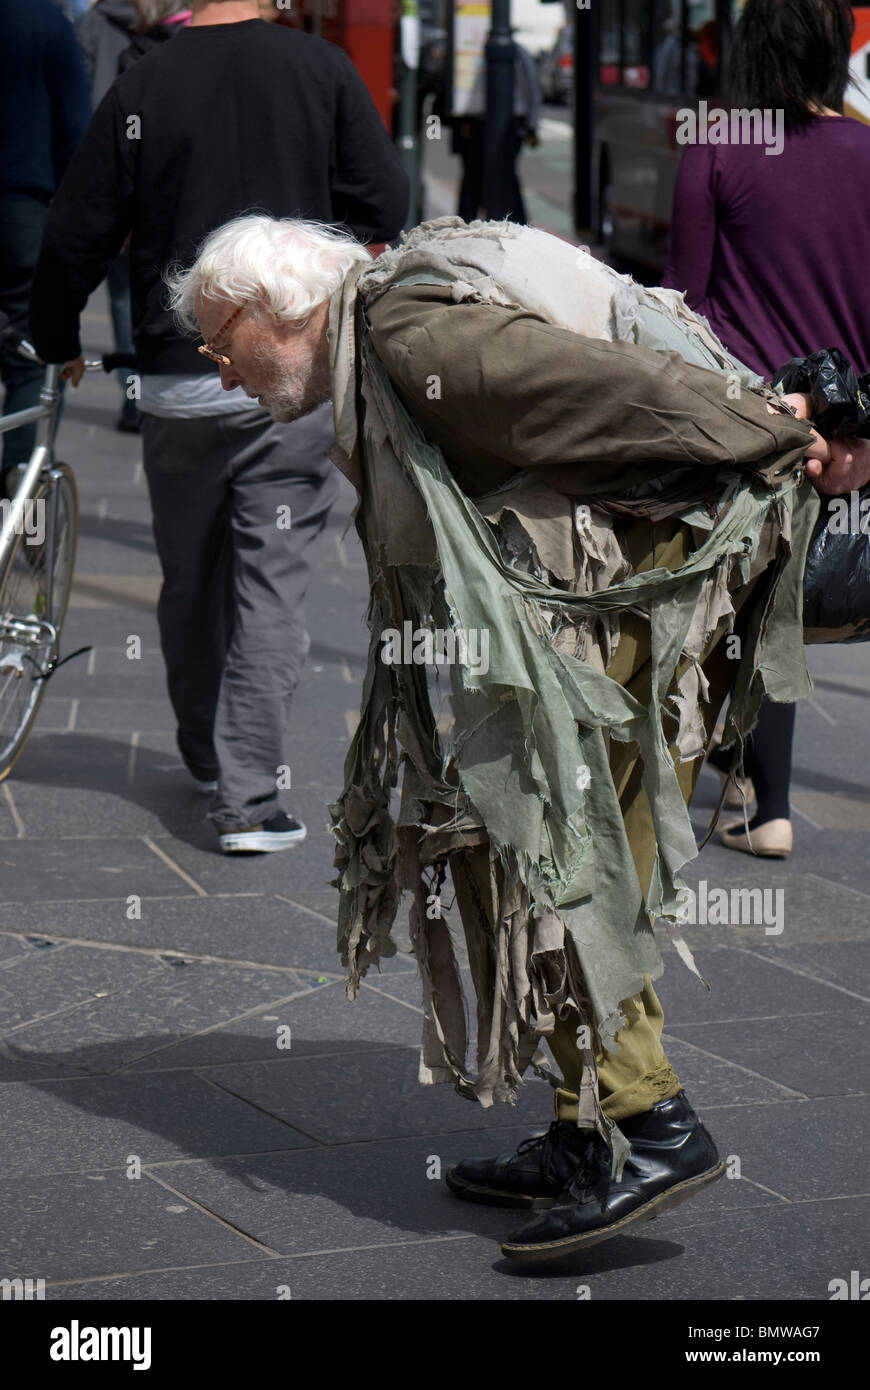 Down-and-out tramp/hobo wearing very ragged clothing in ...  Ragged Clothes